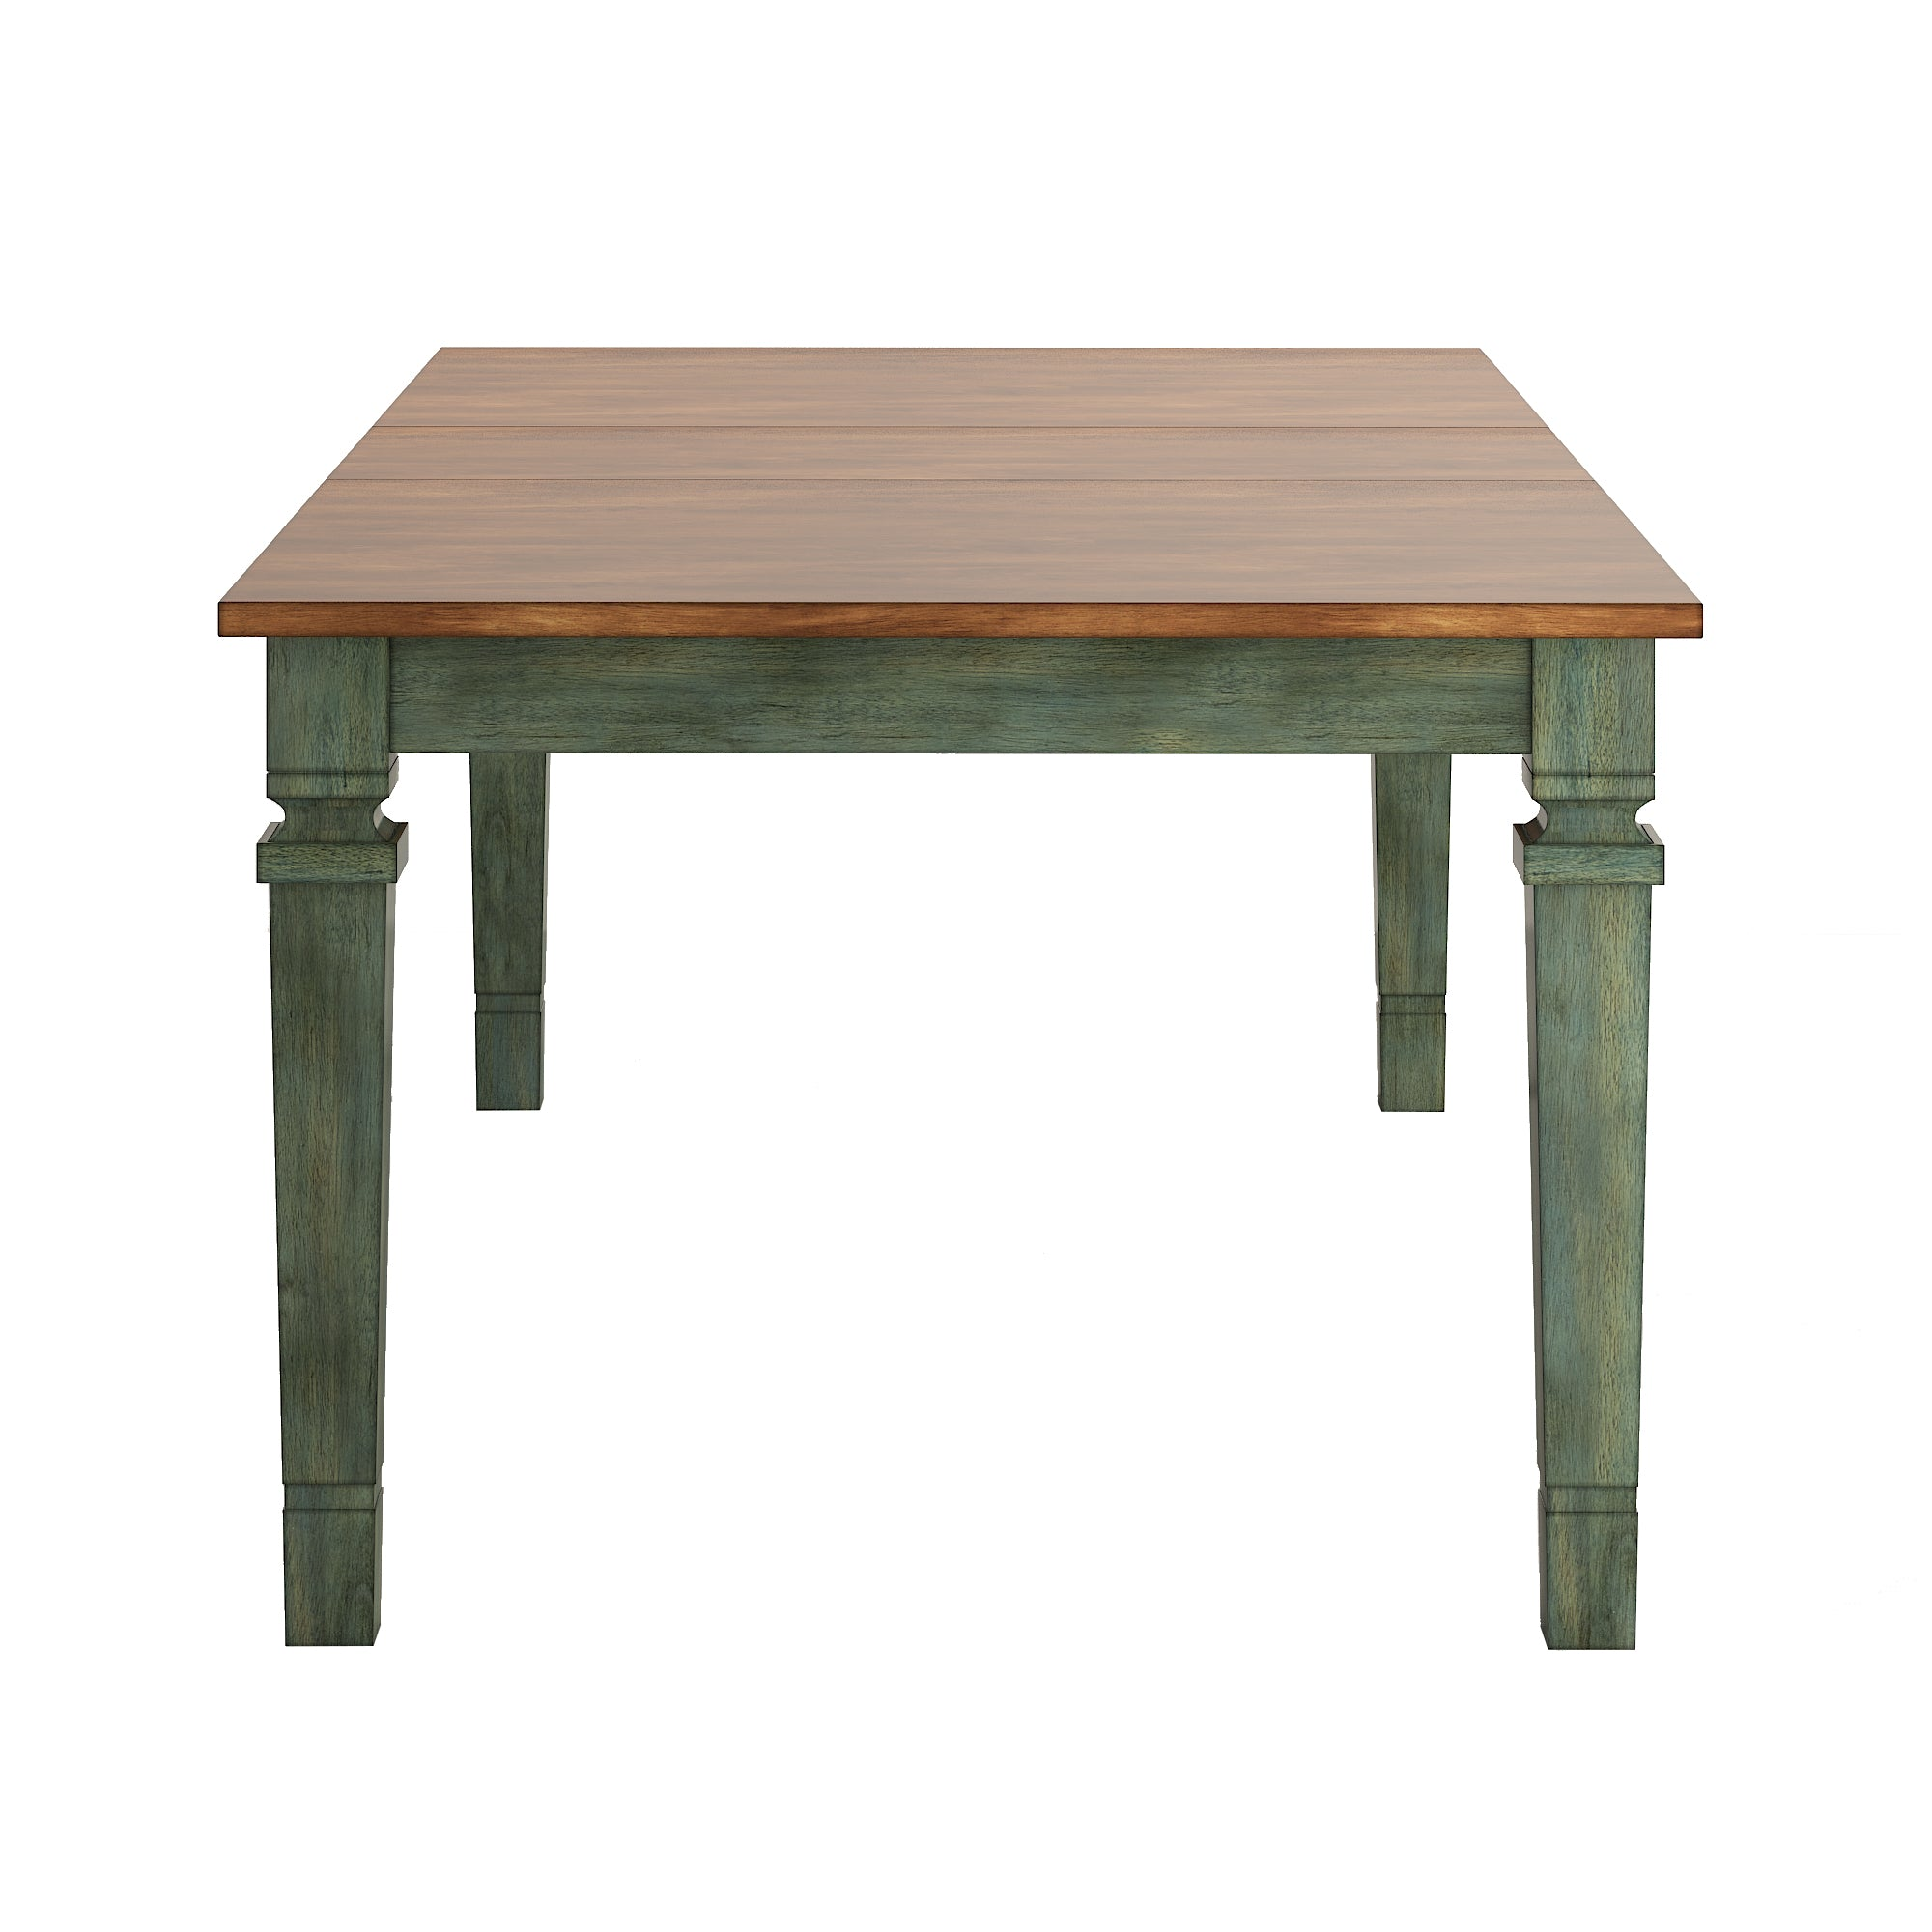 Solid Wood Extendable Dining Table - Green